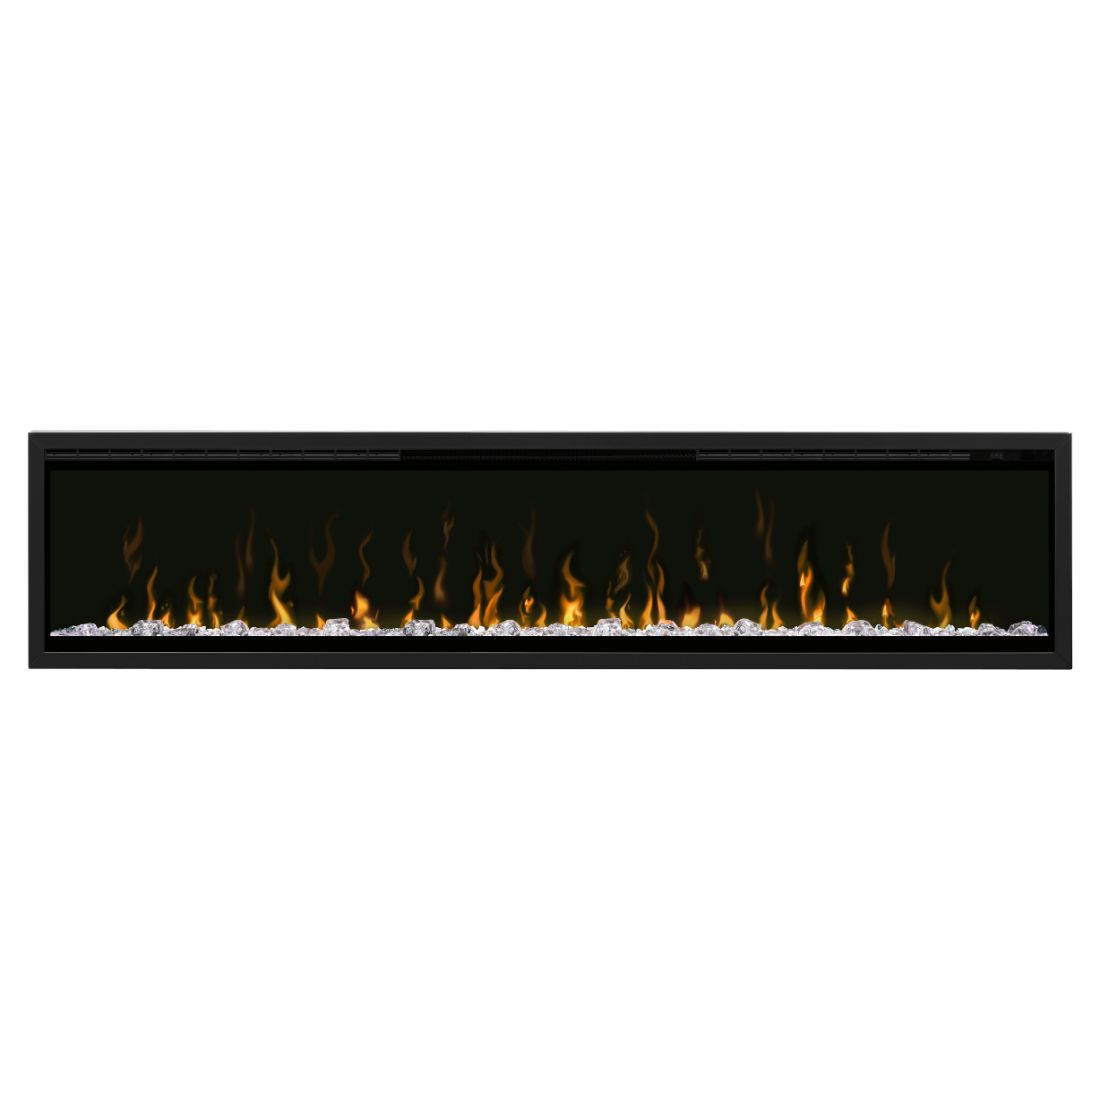 Ignite XL Electric Flame Effect Fire 2kW 74 Inch